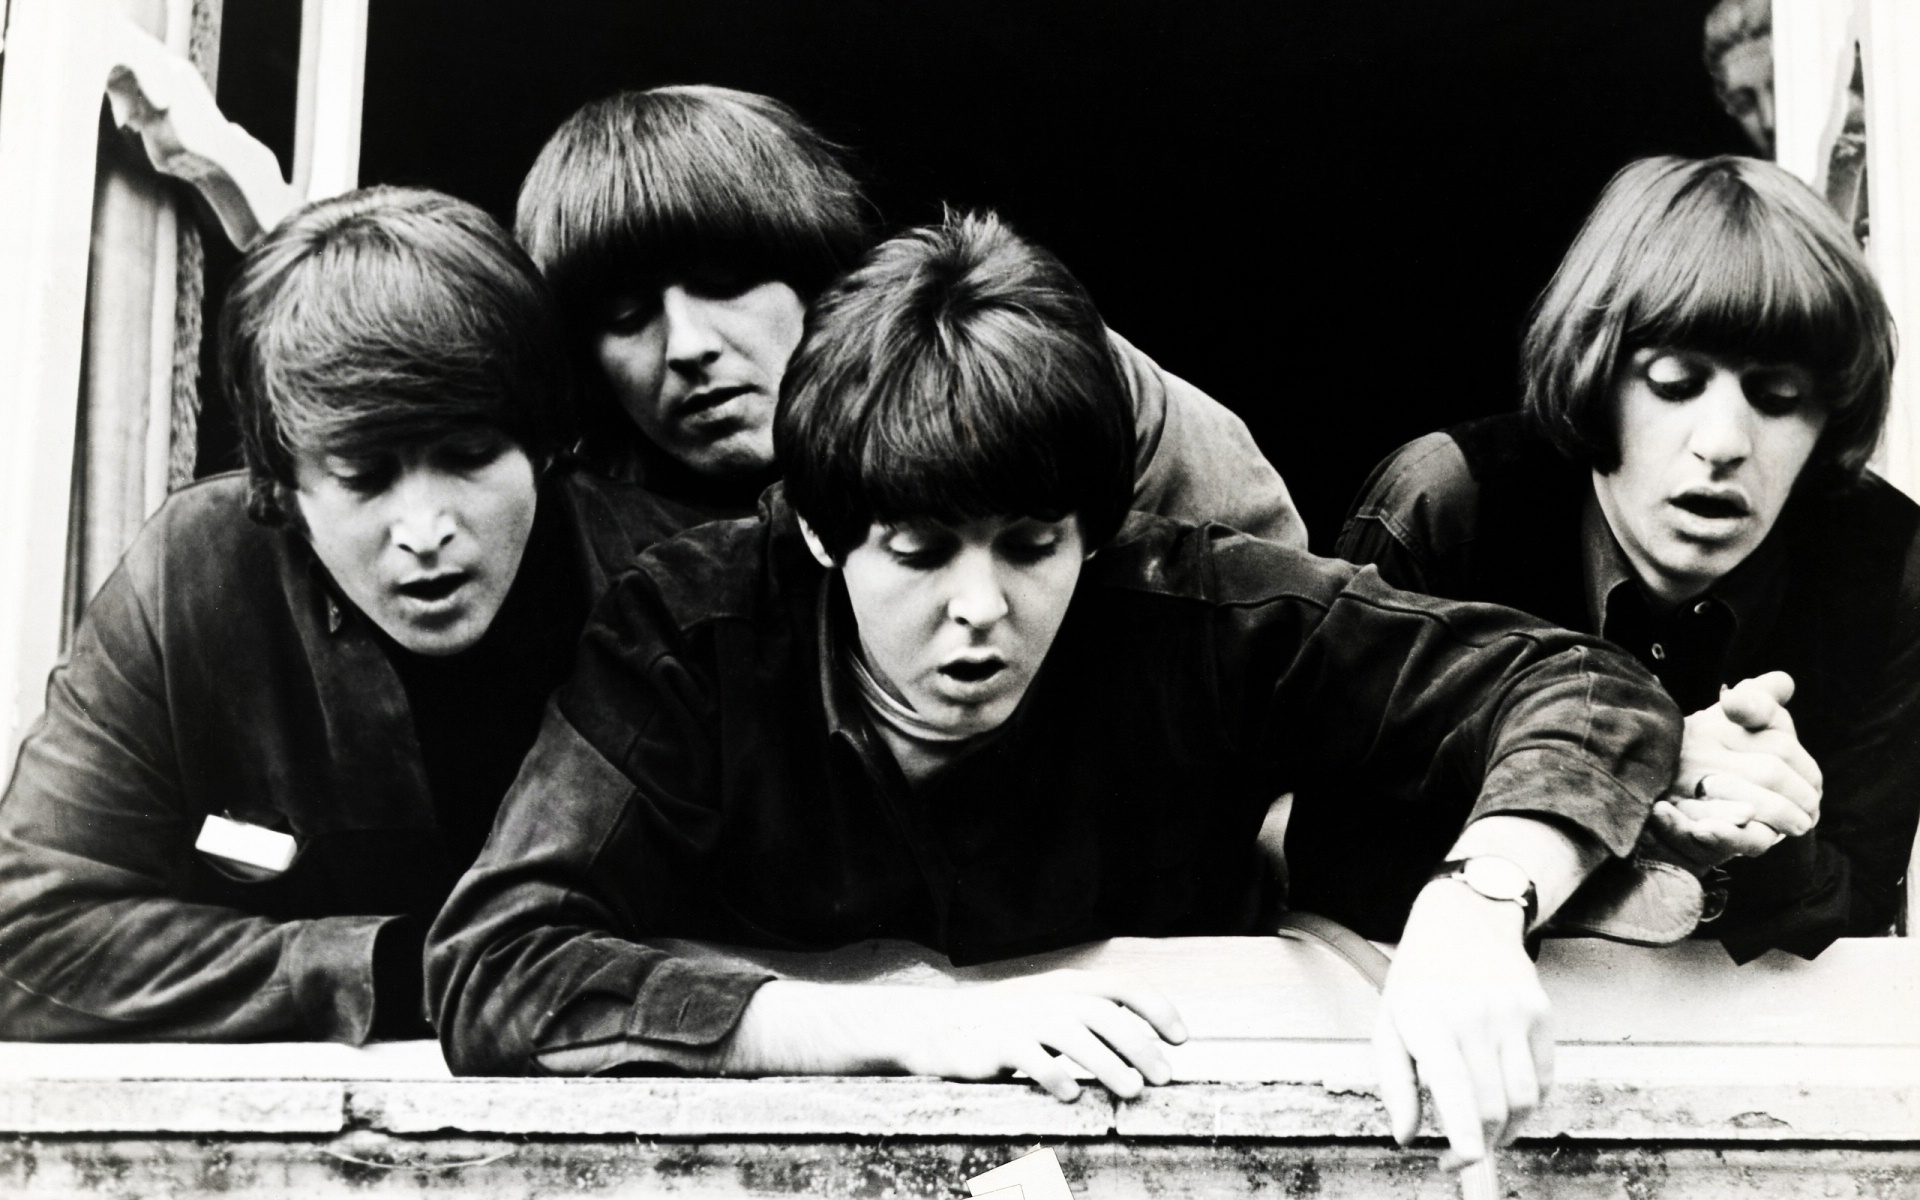 30291 download wallpaper Music, People, Men, Beatles screensavers and pictures for free